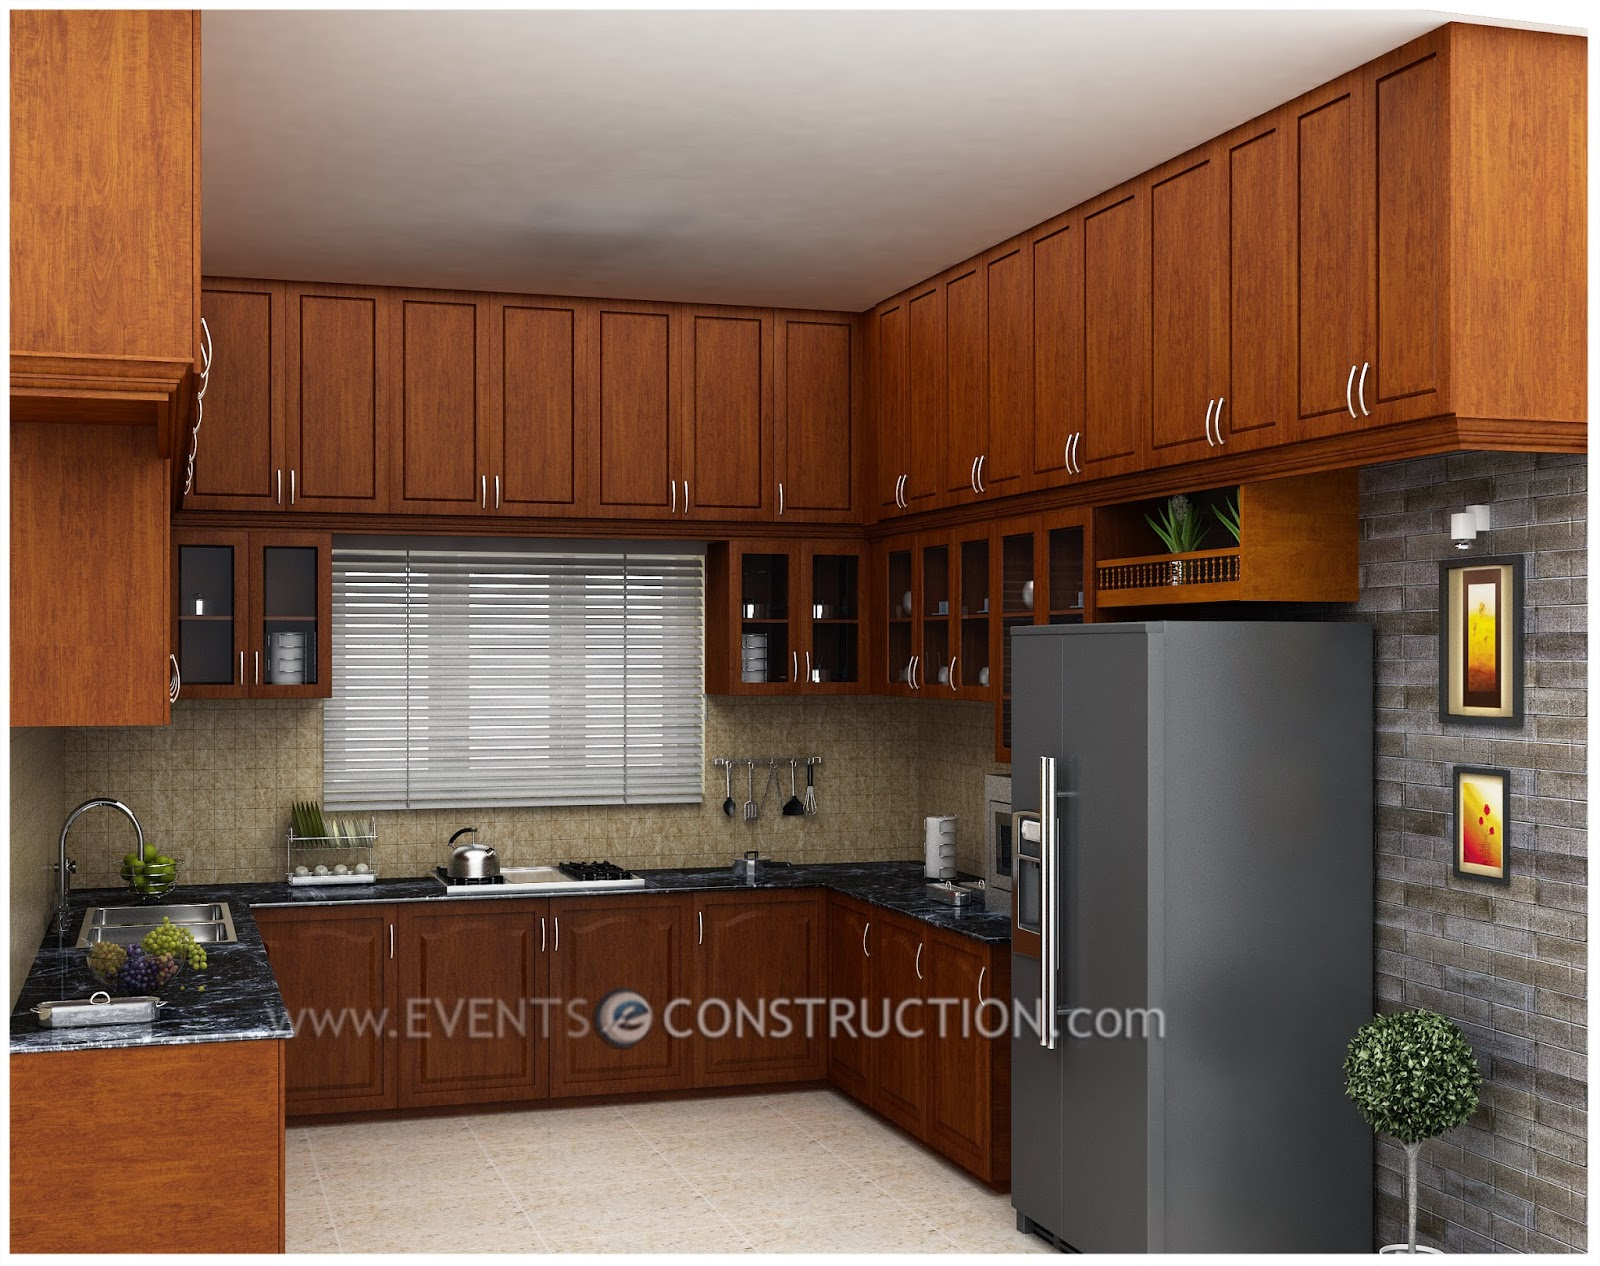 Kerala Kitchen Interior Design